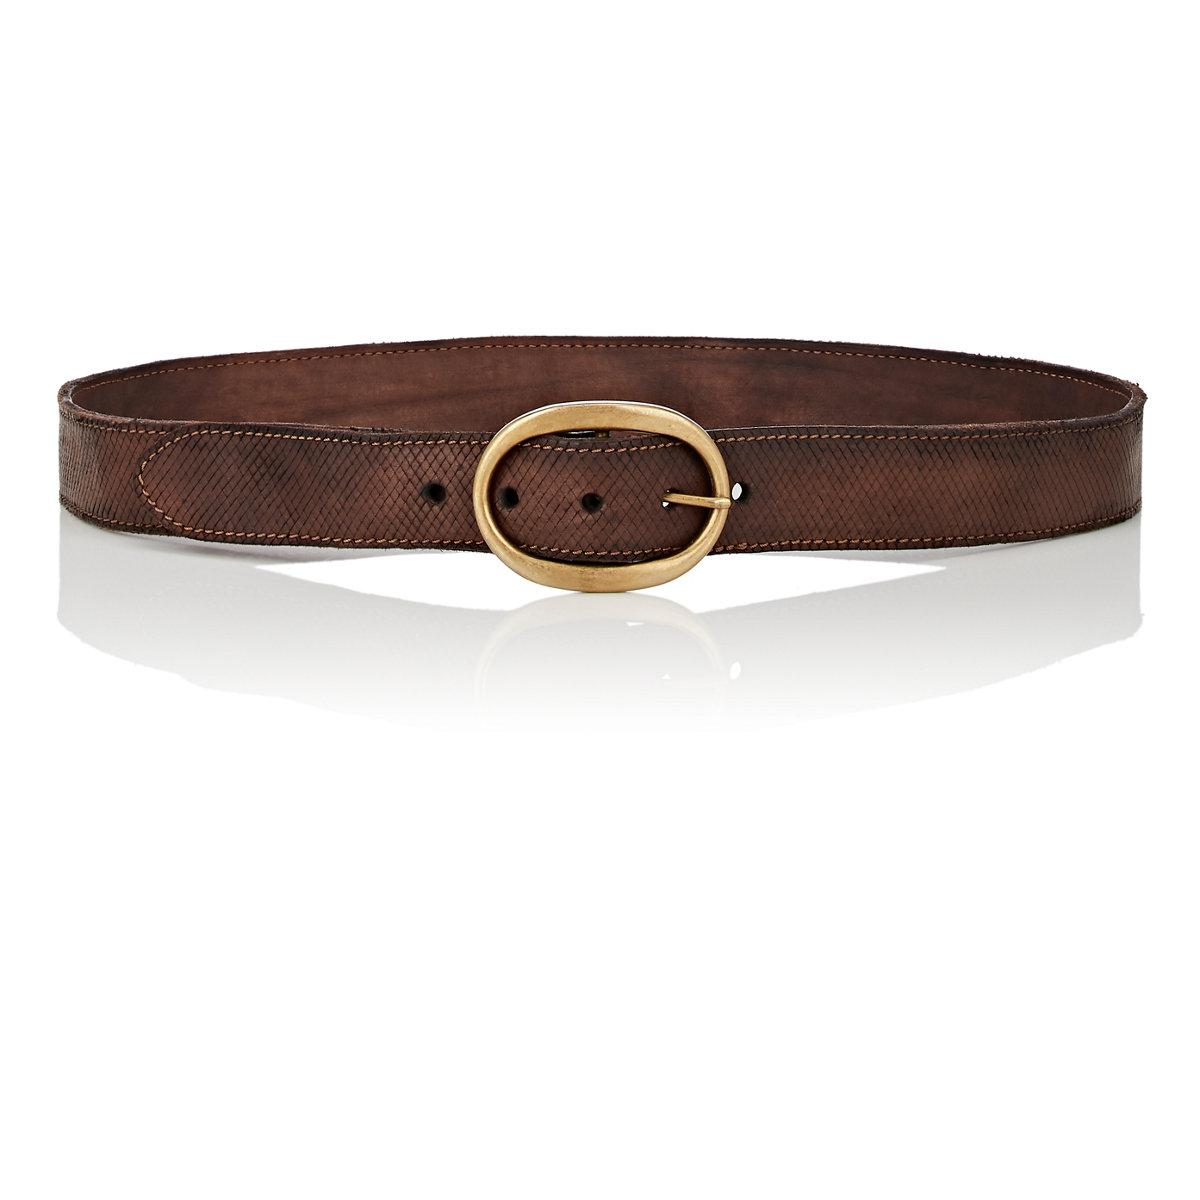 Womens Textured Leather Belt Campomaggi 8bfxVlL